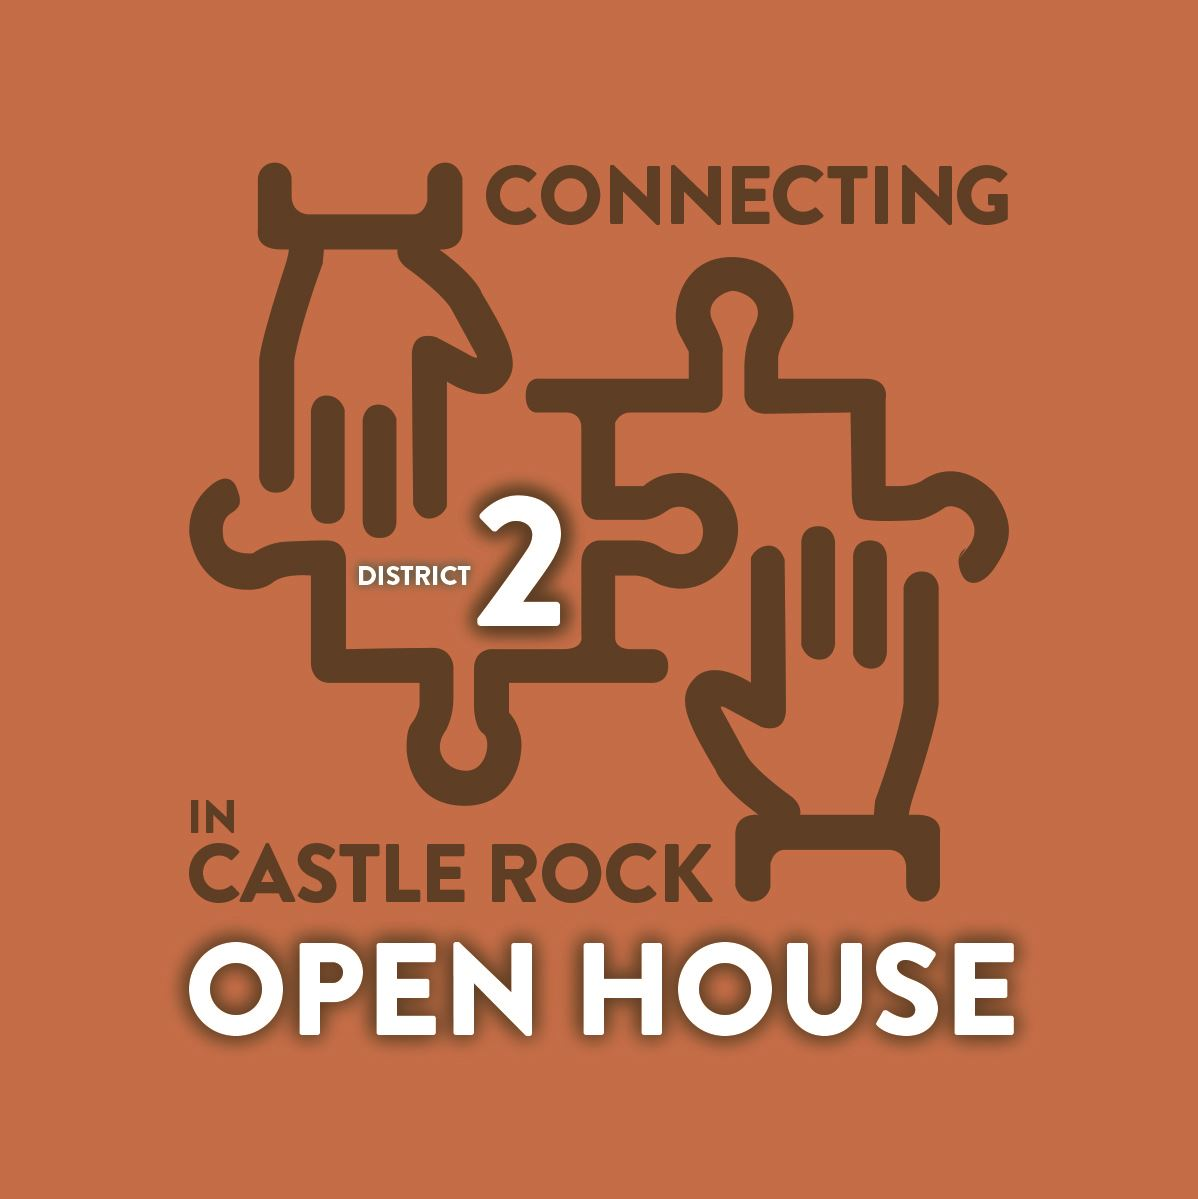 District 2 open house 5:30 to 7 p.m. Tuesday, March 31, at Station 155, 3833 Crowfoot Valley Road